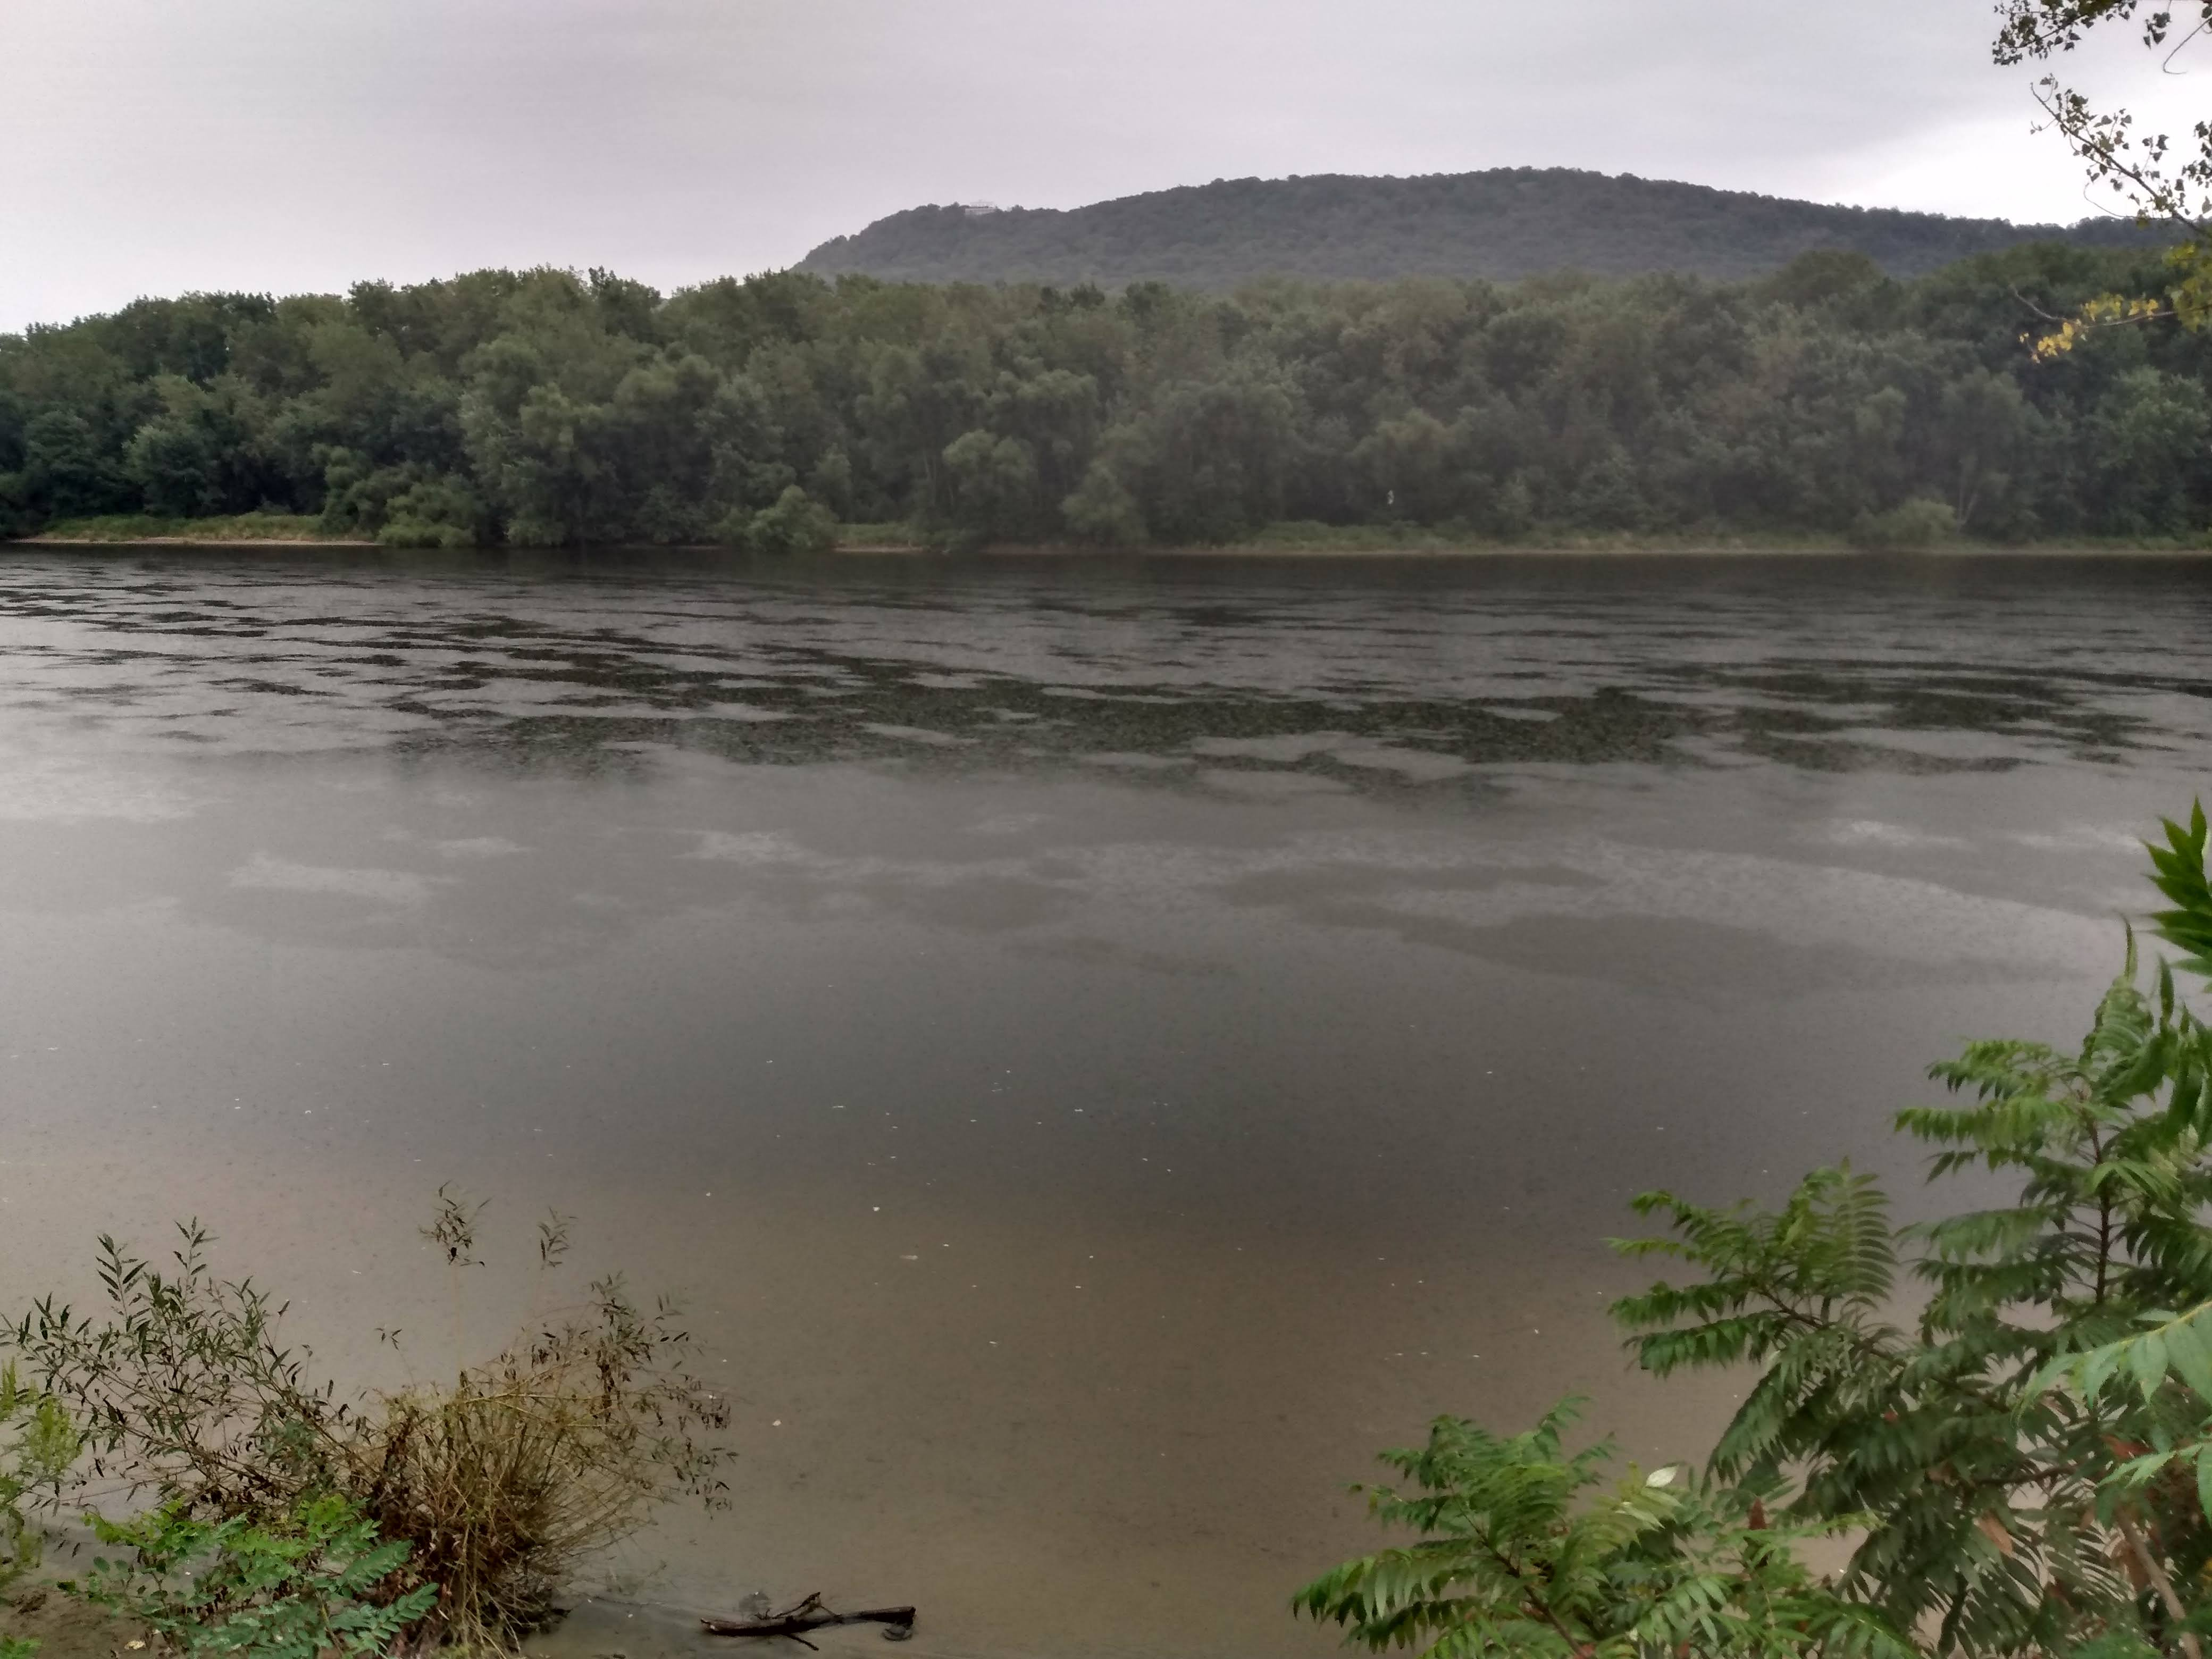 Rain patterns on the Connecticut River